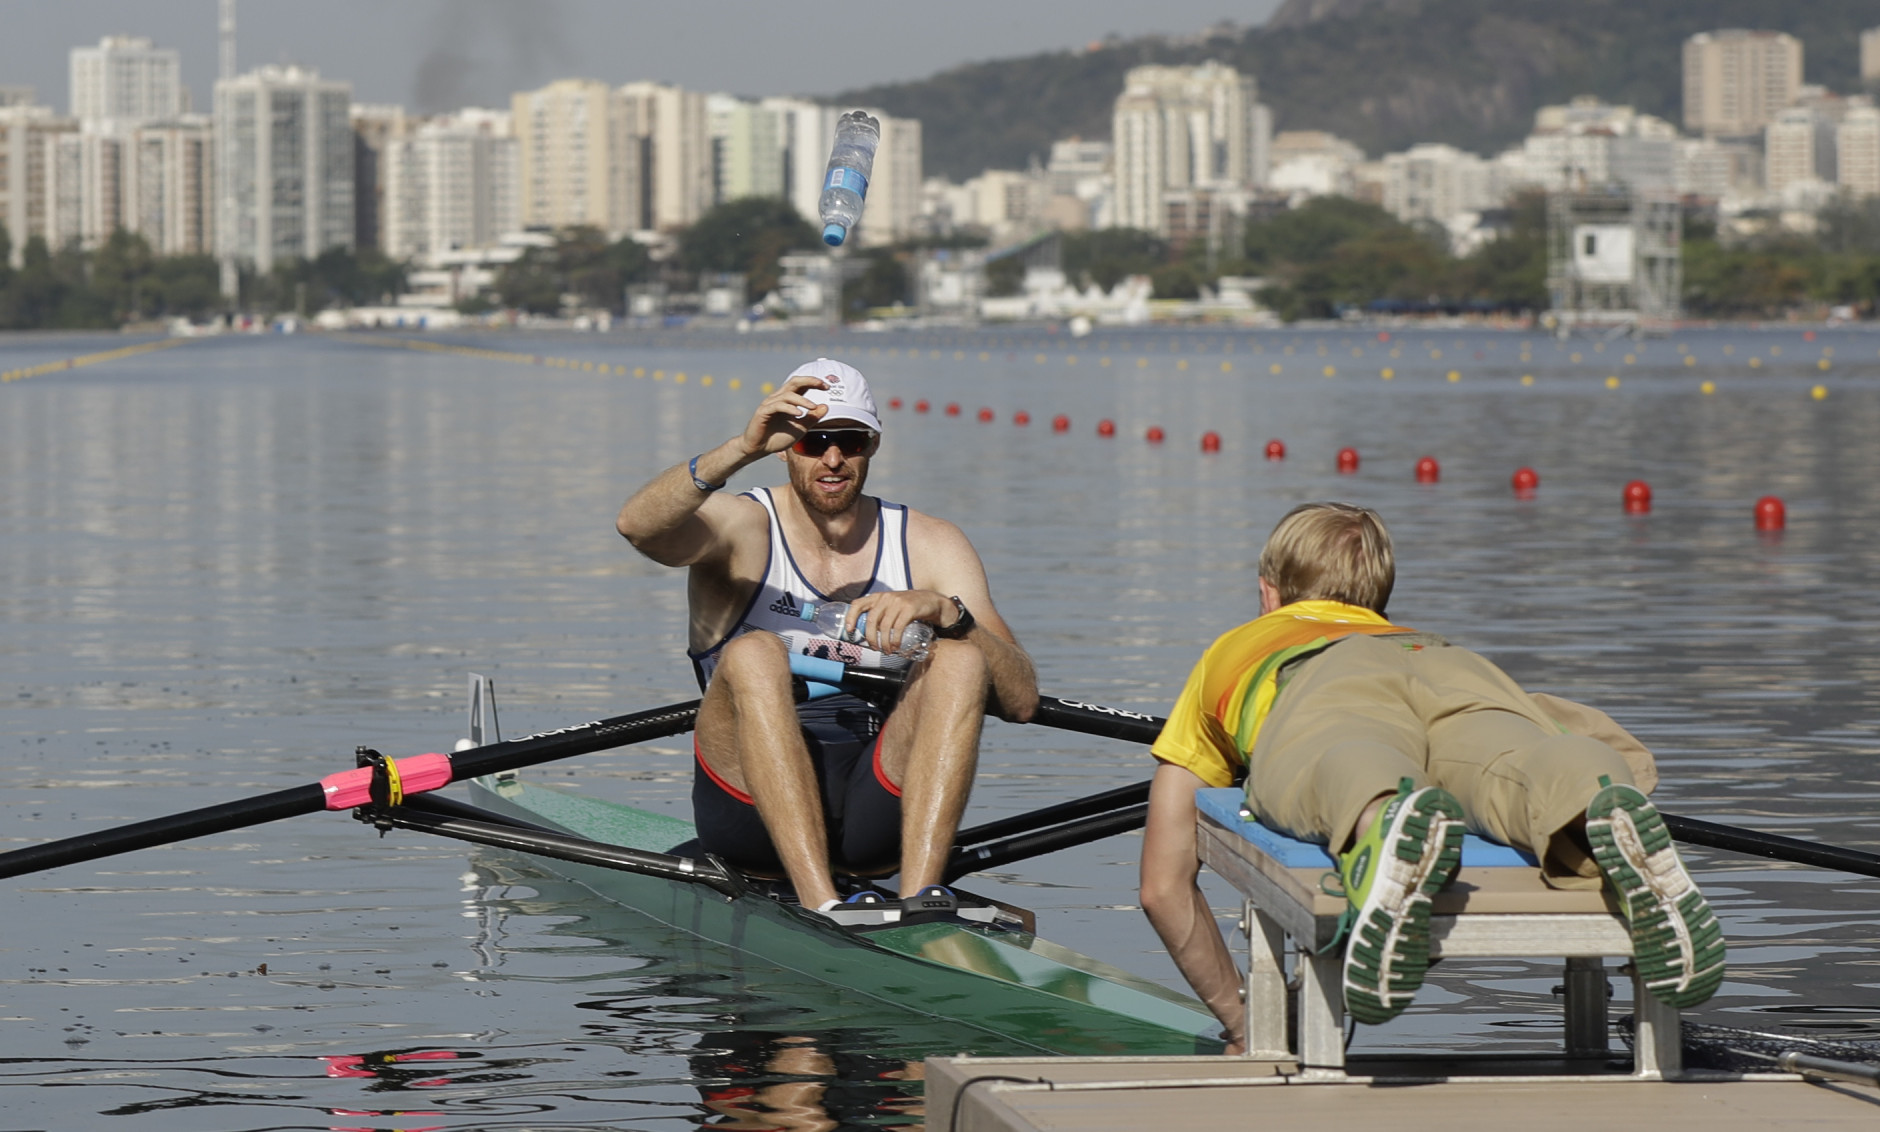 Gret Britain's Alan Campbell launches a bottle of water before competing in the rowing Men's single sculls in Lagoa during the 2016 Summer Olympics in Rio de Janeiro, Brazil, Saturday, Aug. 6, 2016. (Luca Bruno)